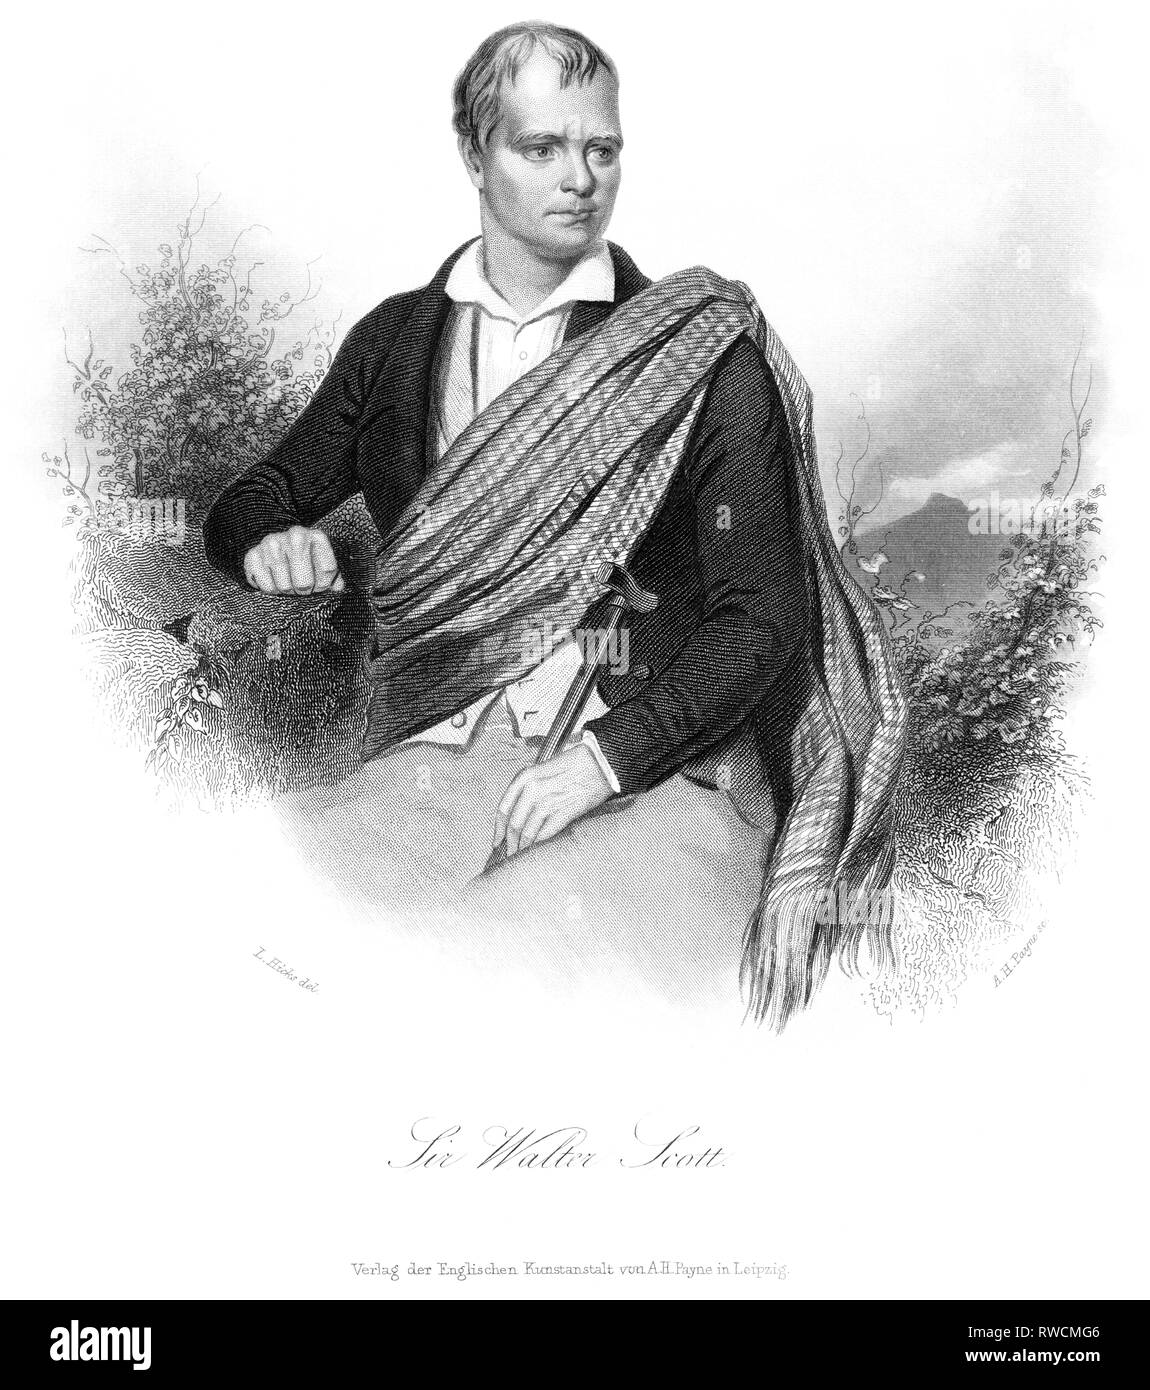 Great Britain, Scotland, Edinburgh, Sir Walter Scott, Scottish writer and poet, steel engraving by A. H. Payne after L. Hicks, around 1850., Artist's Copyright has not to be cleared - Stock Image